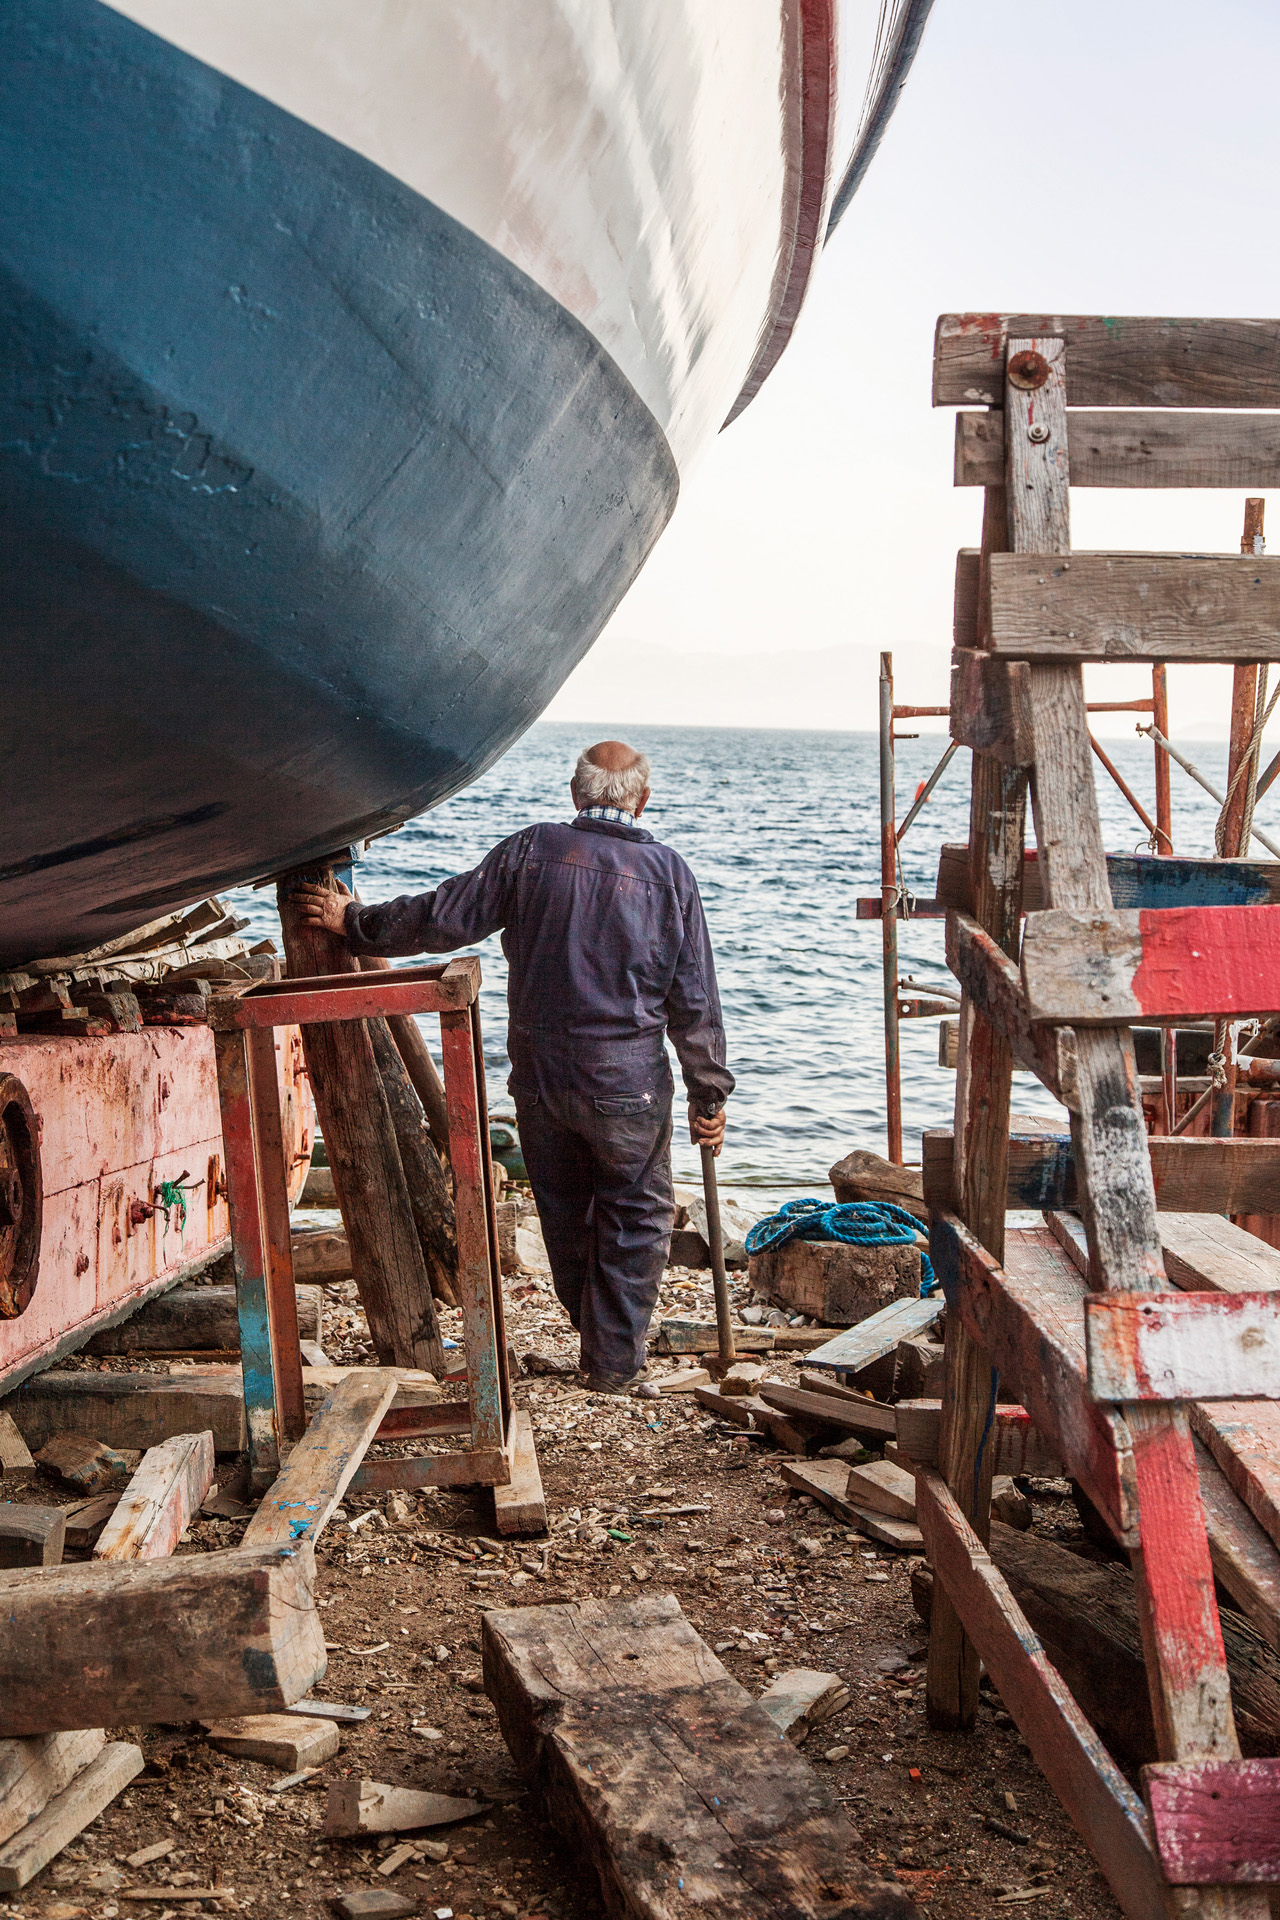 00 Trikeri_The-owner-of-the-boatyard-is-looking-to-the-horizon_after-some-hard-work-on-one-of-the-boats